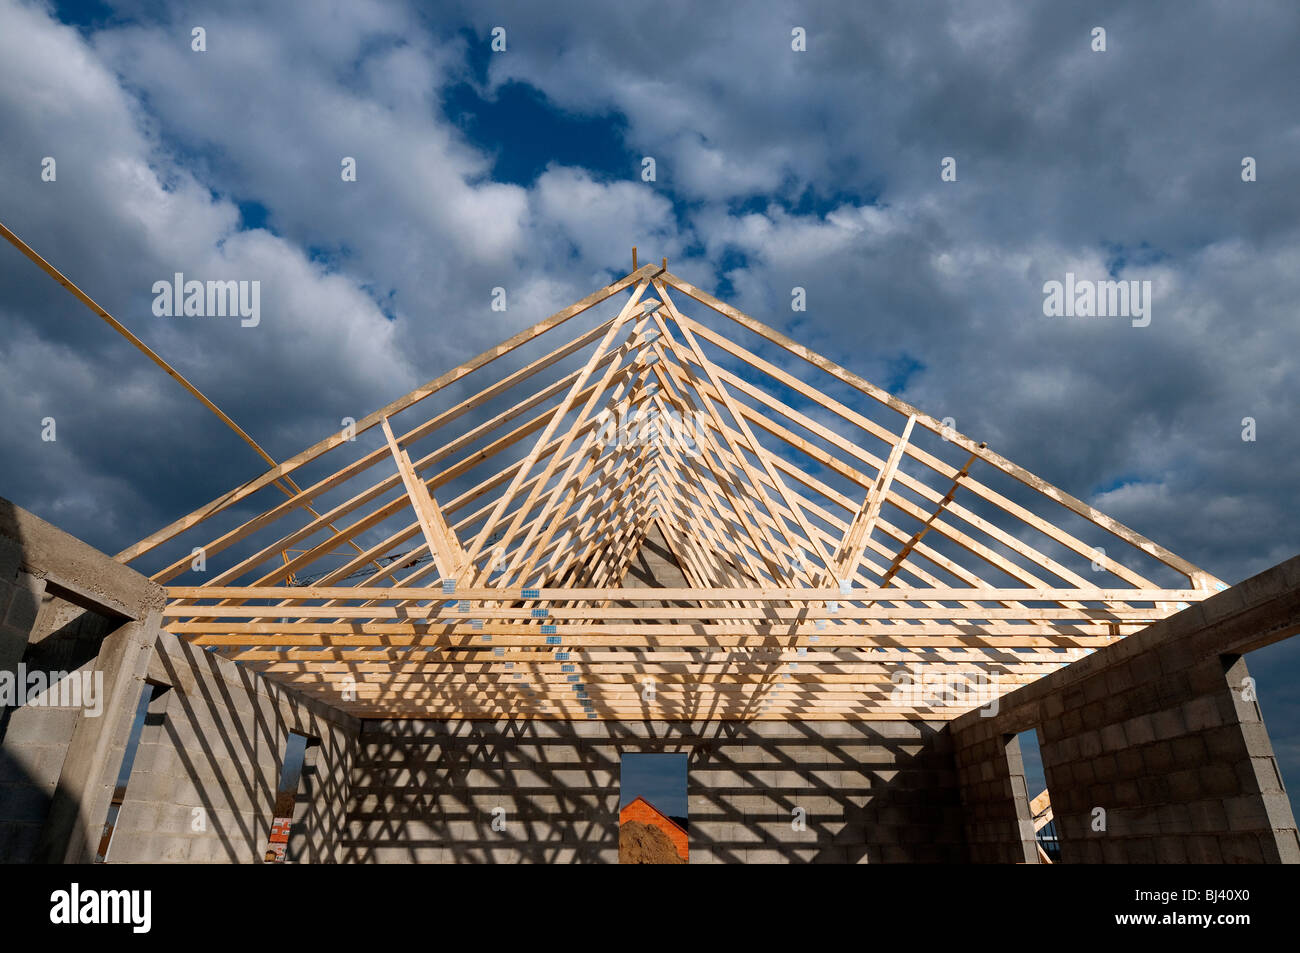 Prefabricated timber roof trusses on building site for Prefabricated roof truss